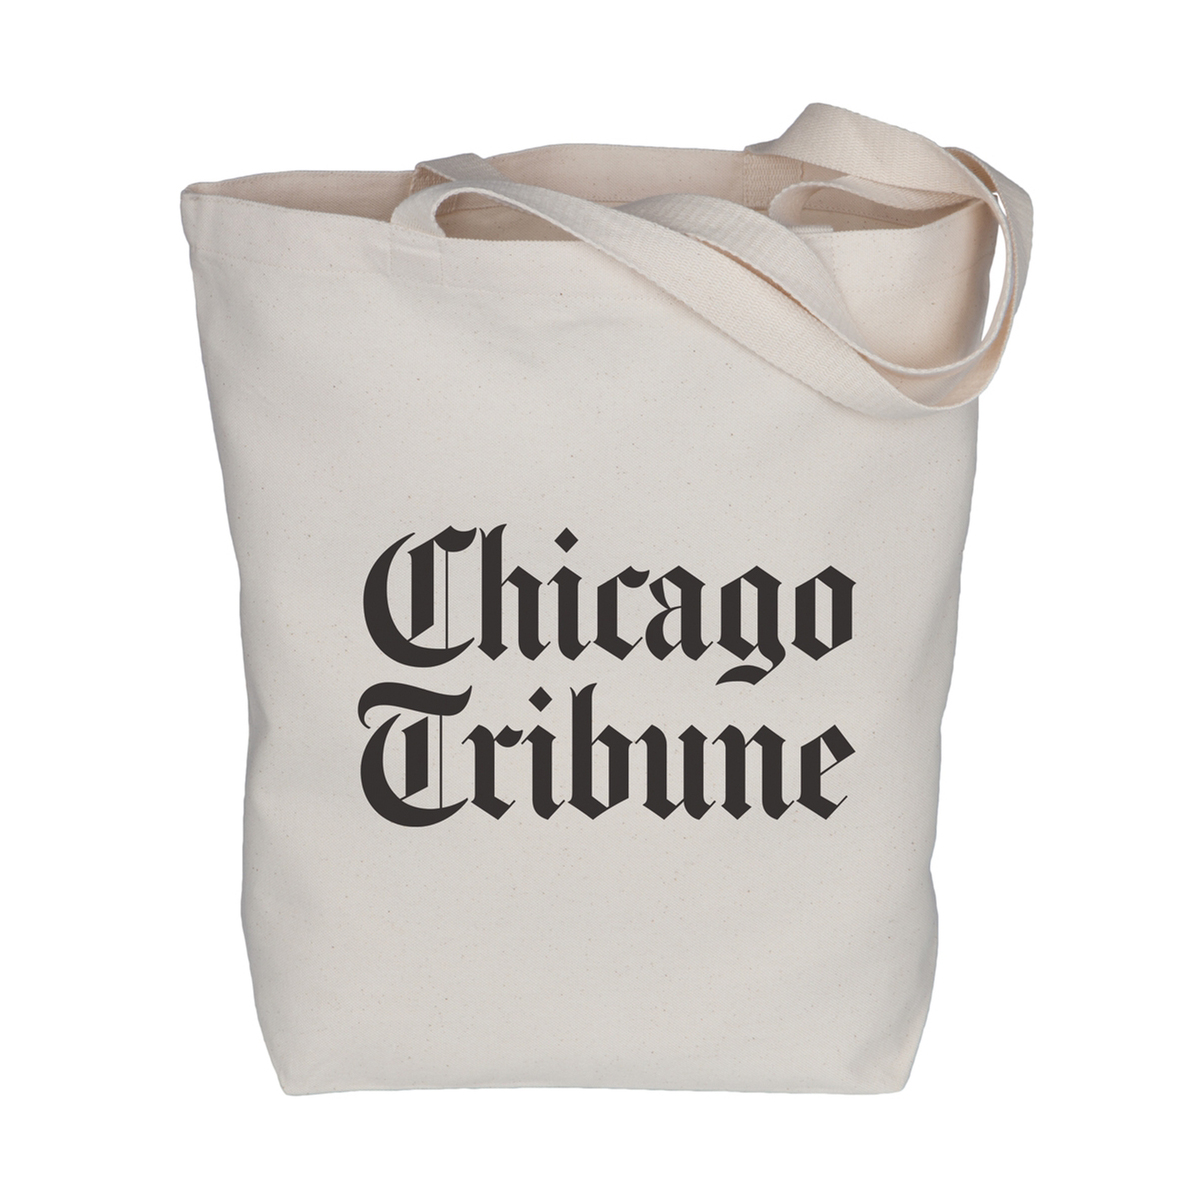 Chicago Tribune Tote Bag